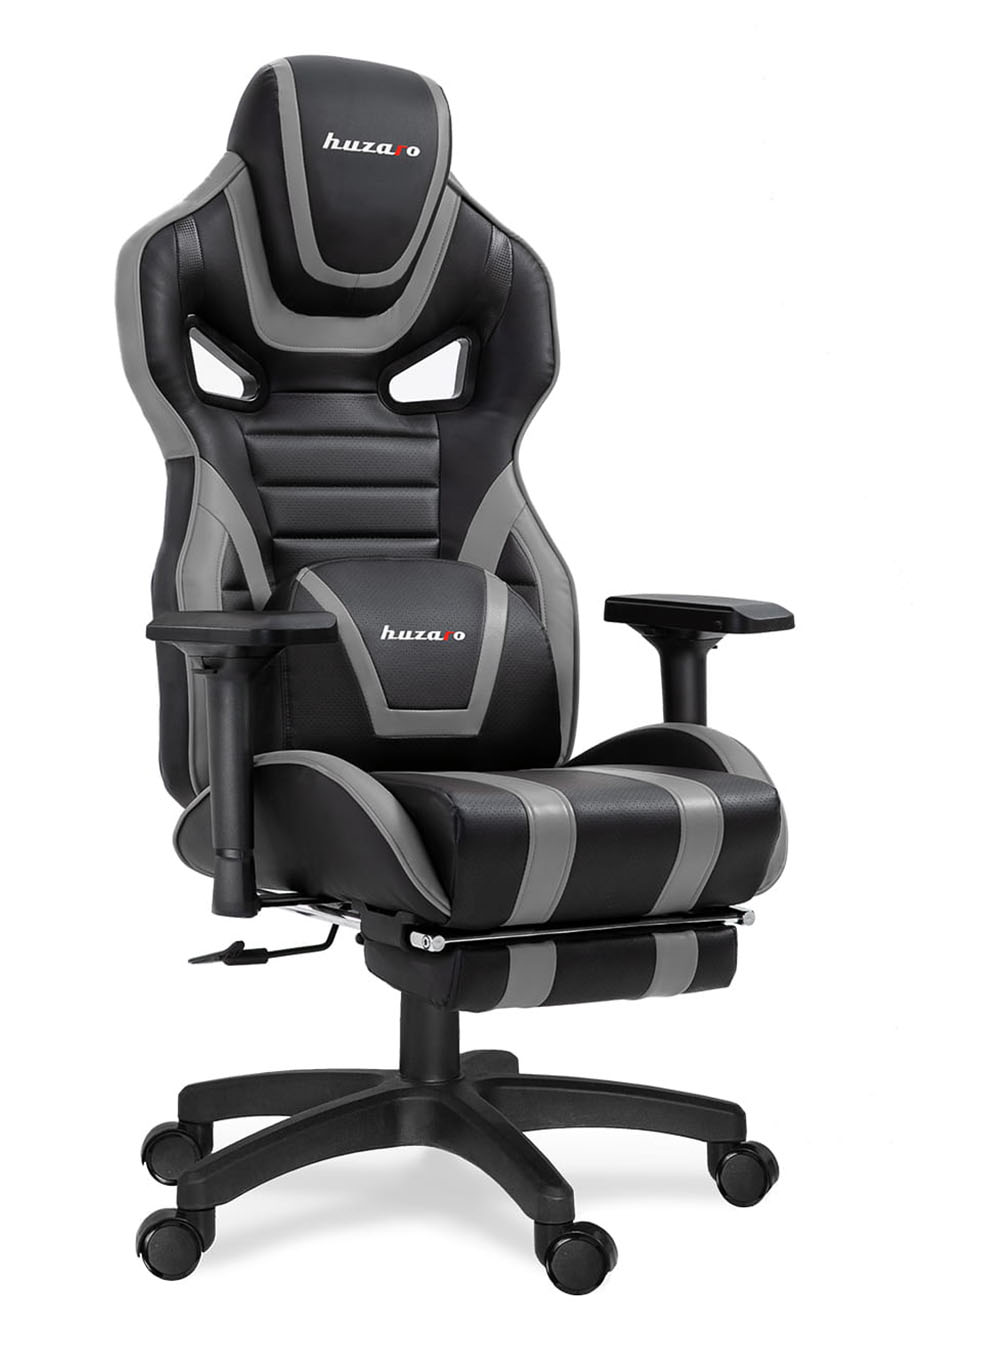 Force-7.5-Grey-Huzaro-gaming-chairs